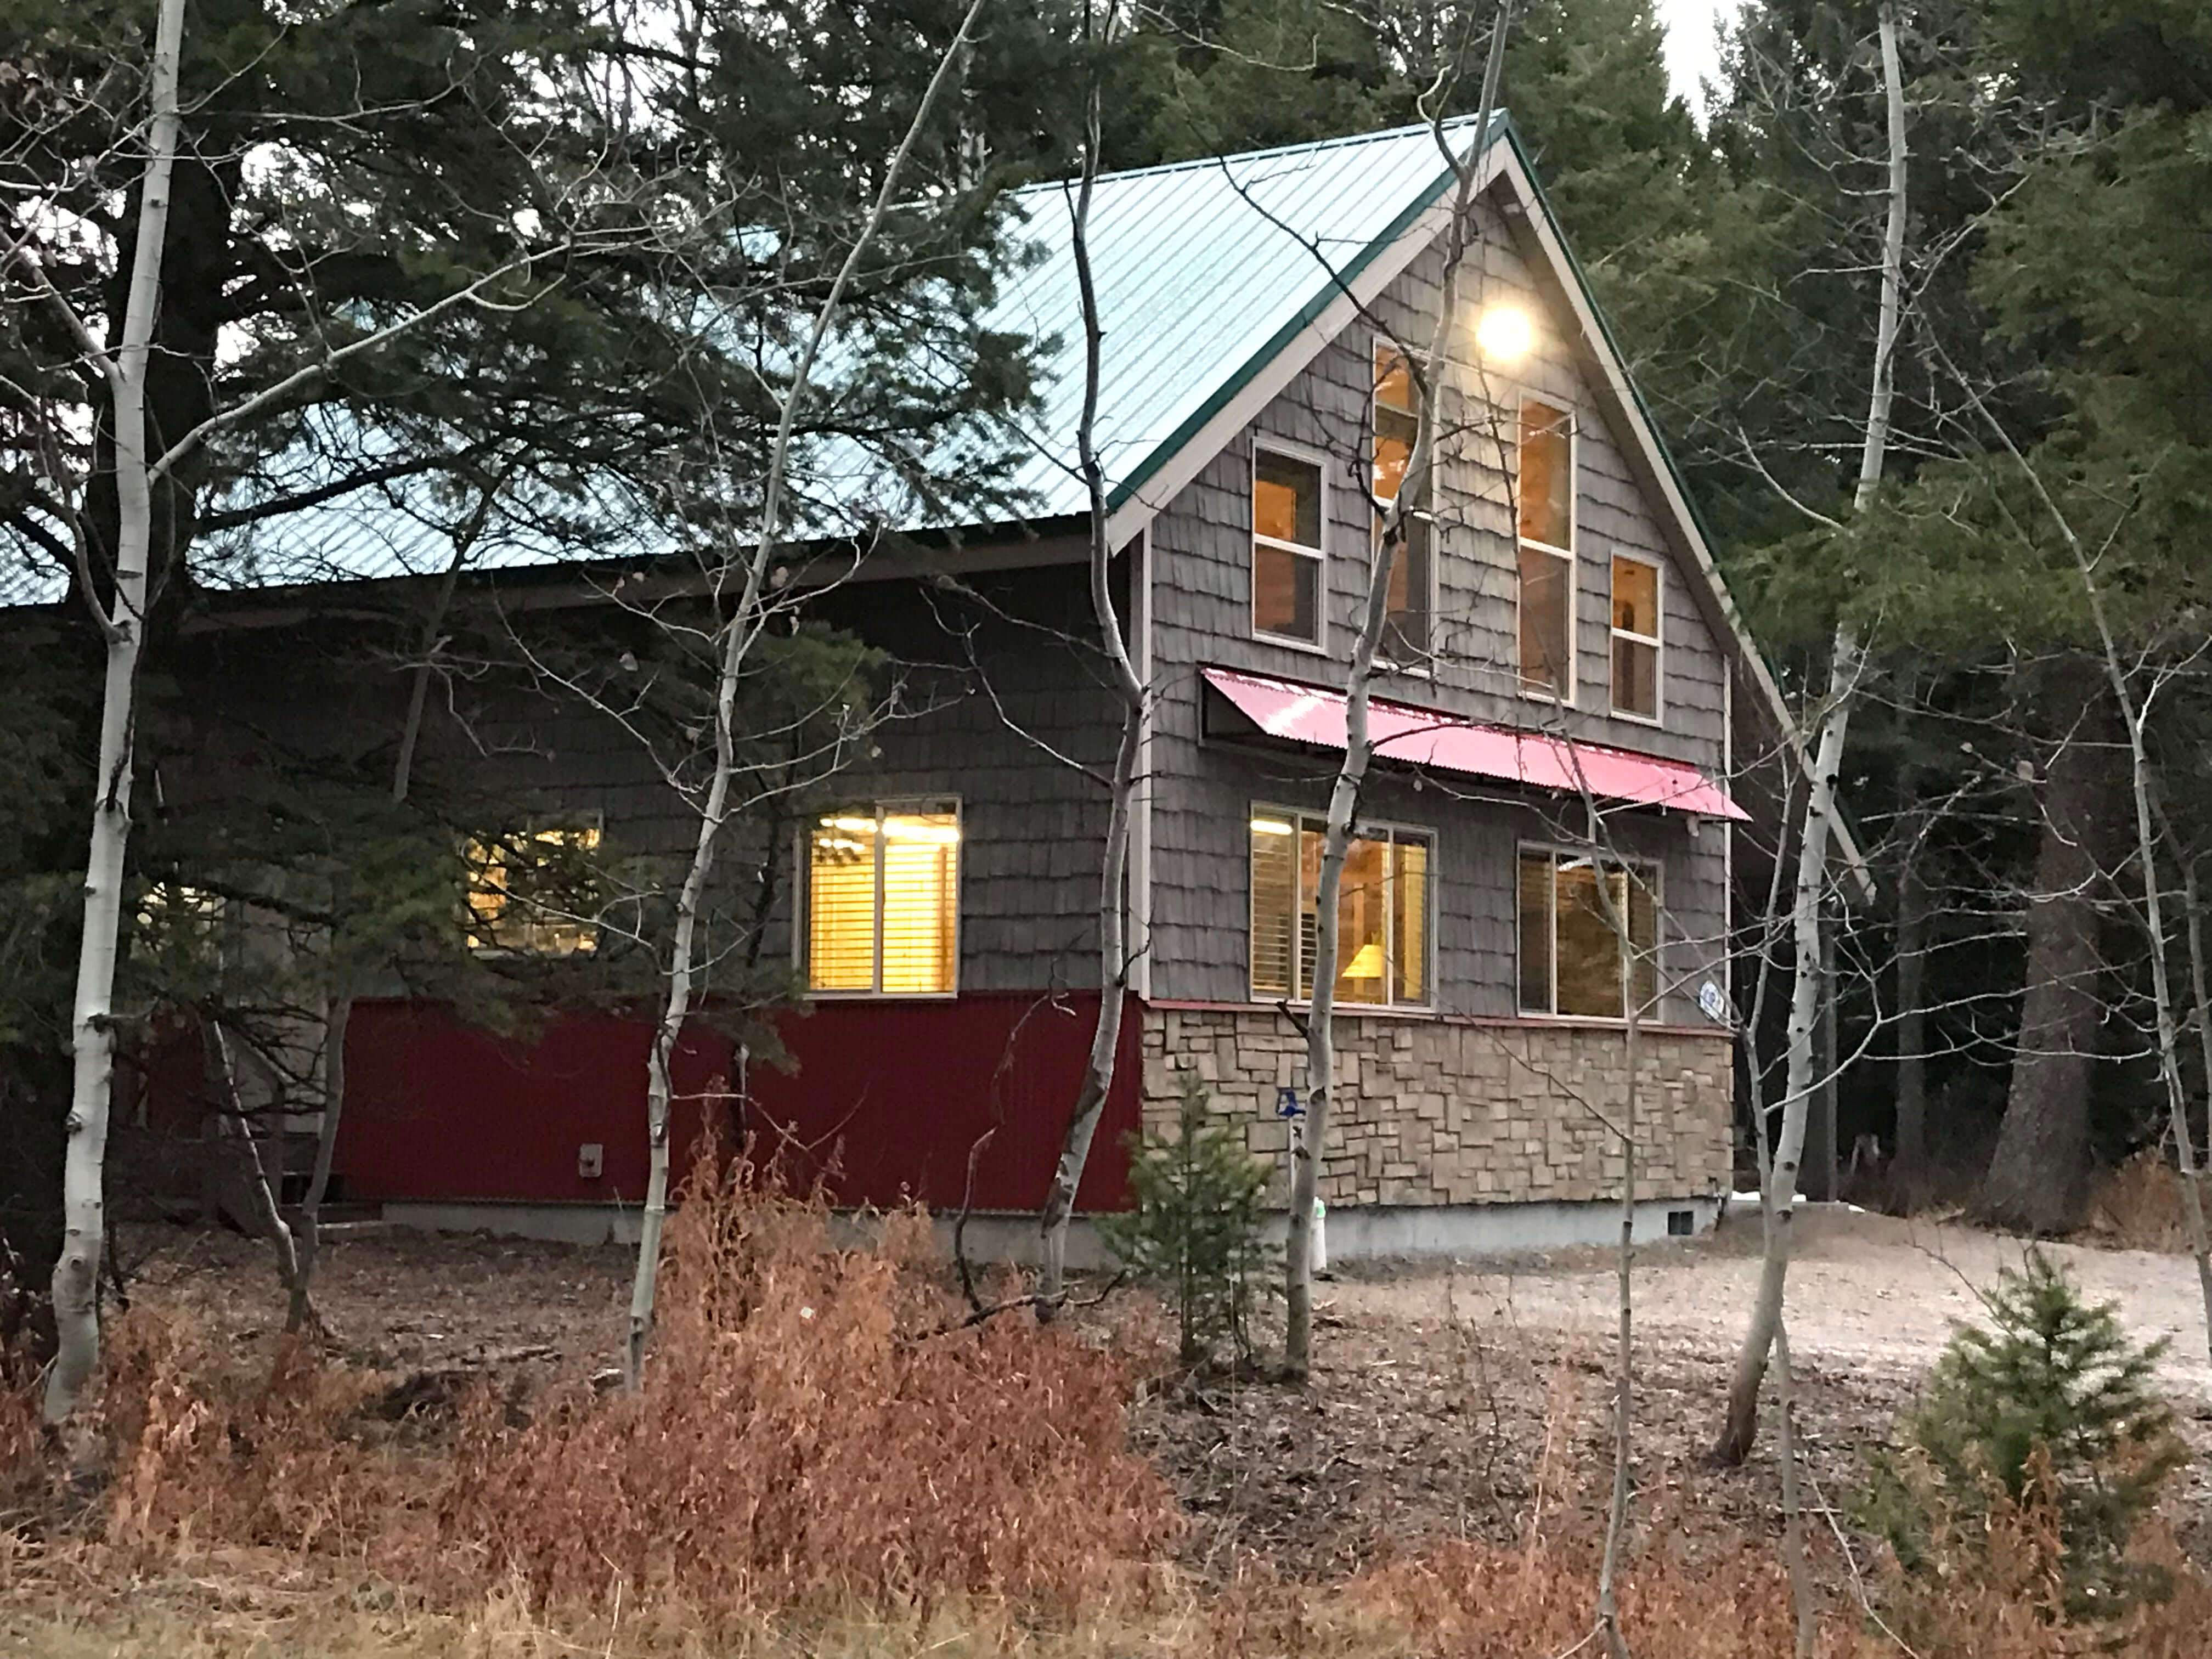 Island Park property management Aspen Cabin surronded by tress